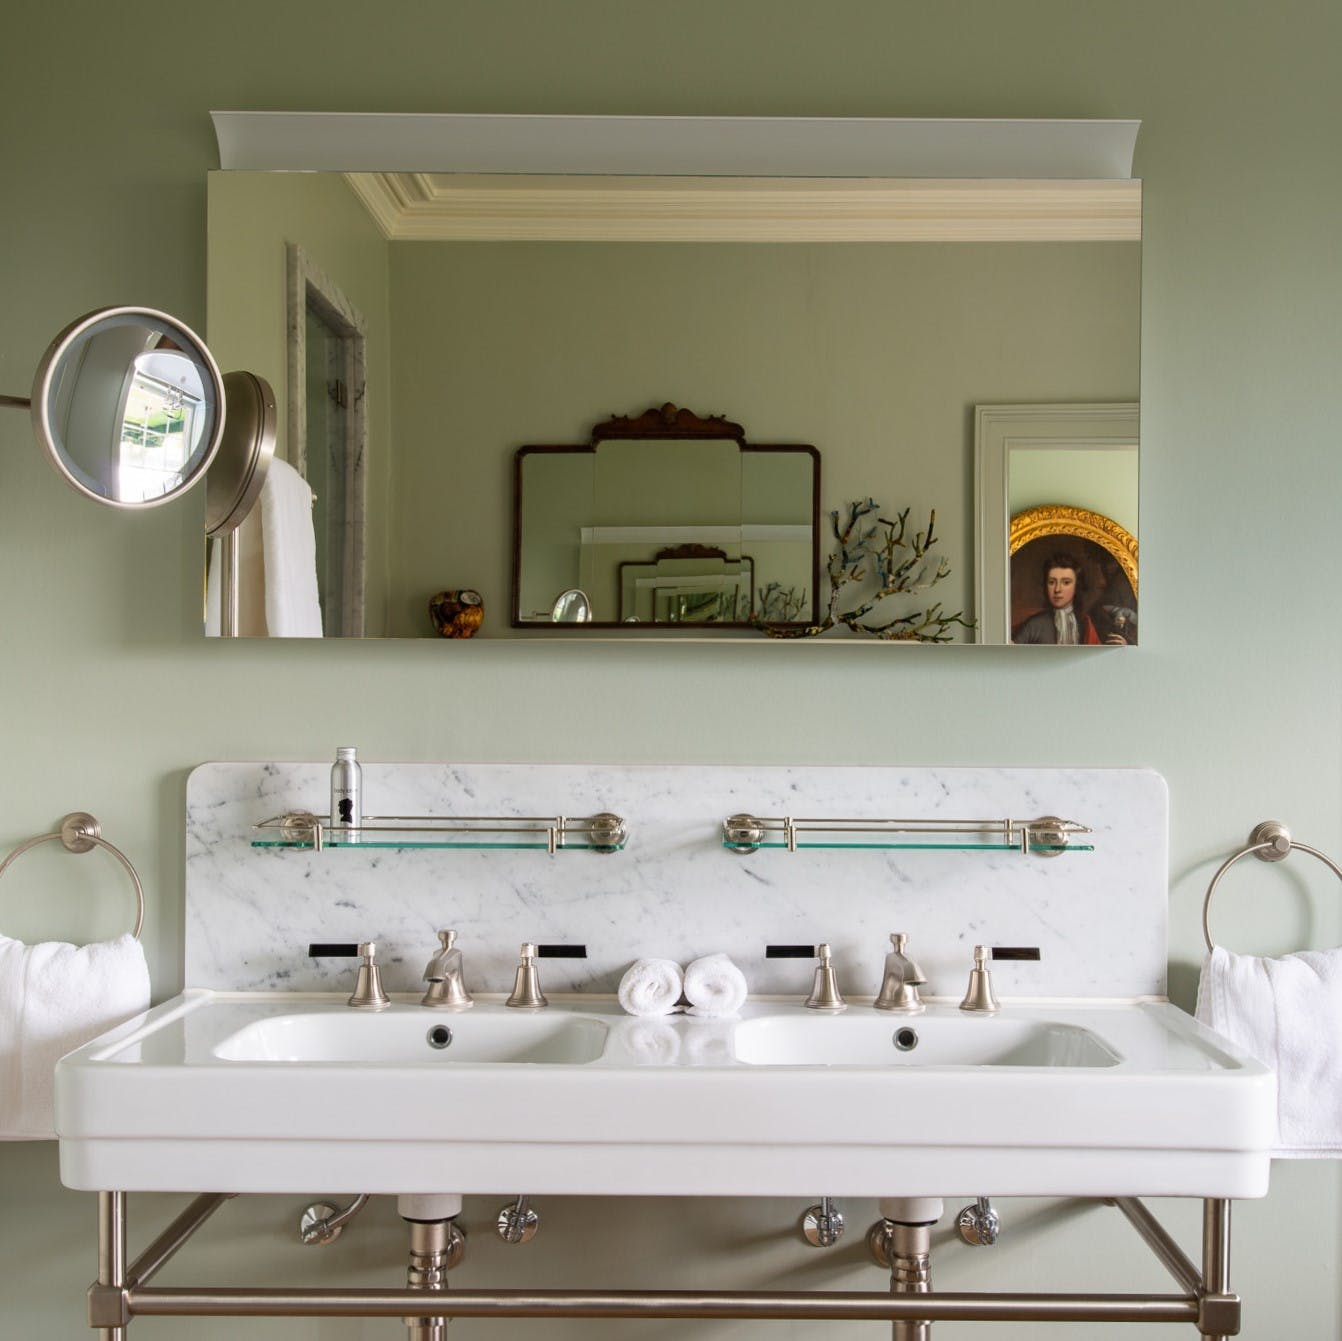 Samuel Heath art deco inspired taps. Style Moderne in a brushed nickel finish with black levers.